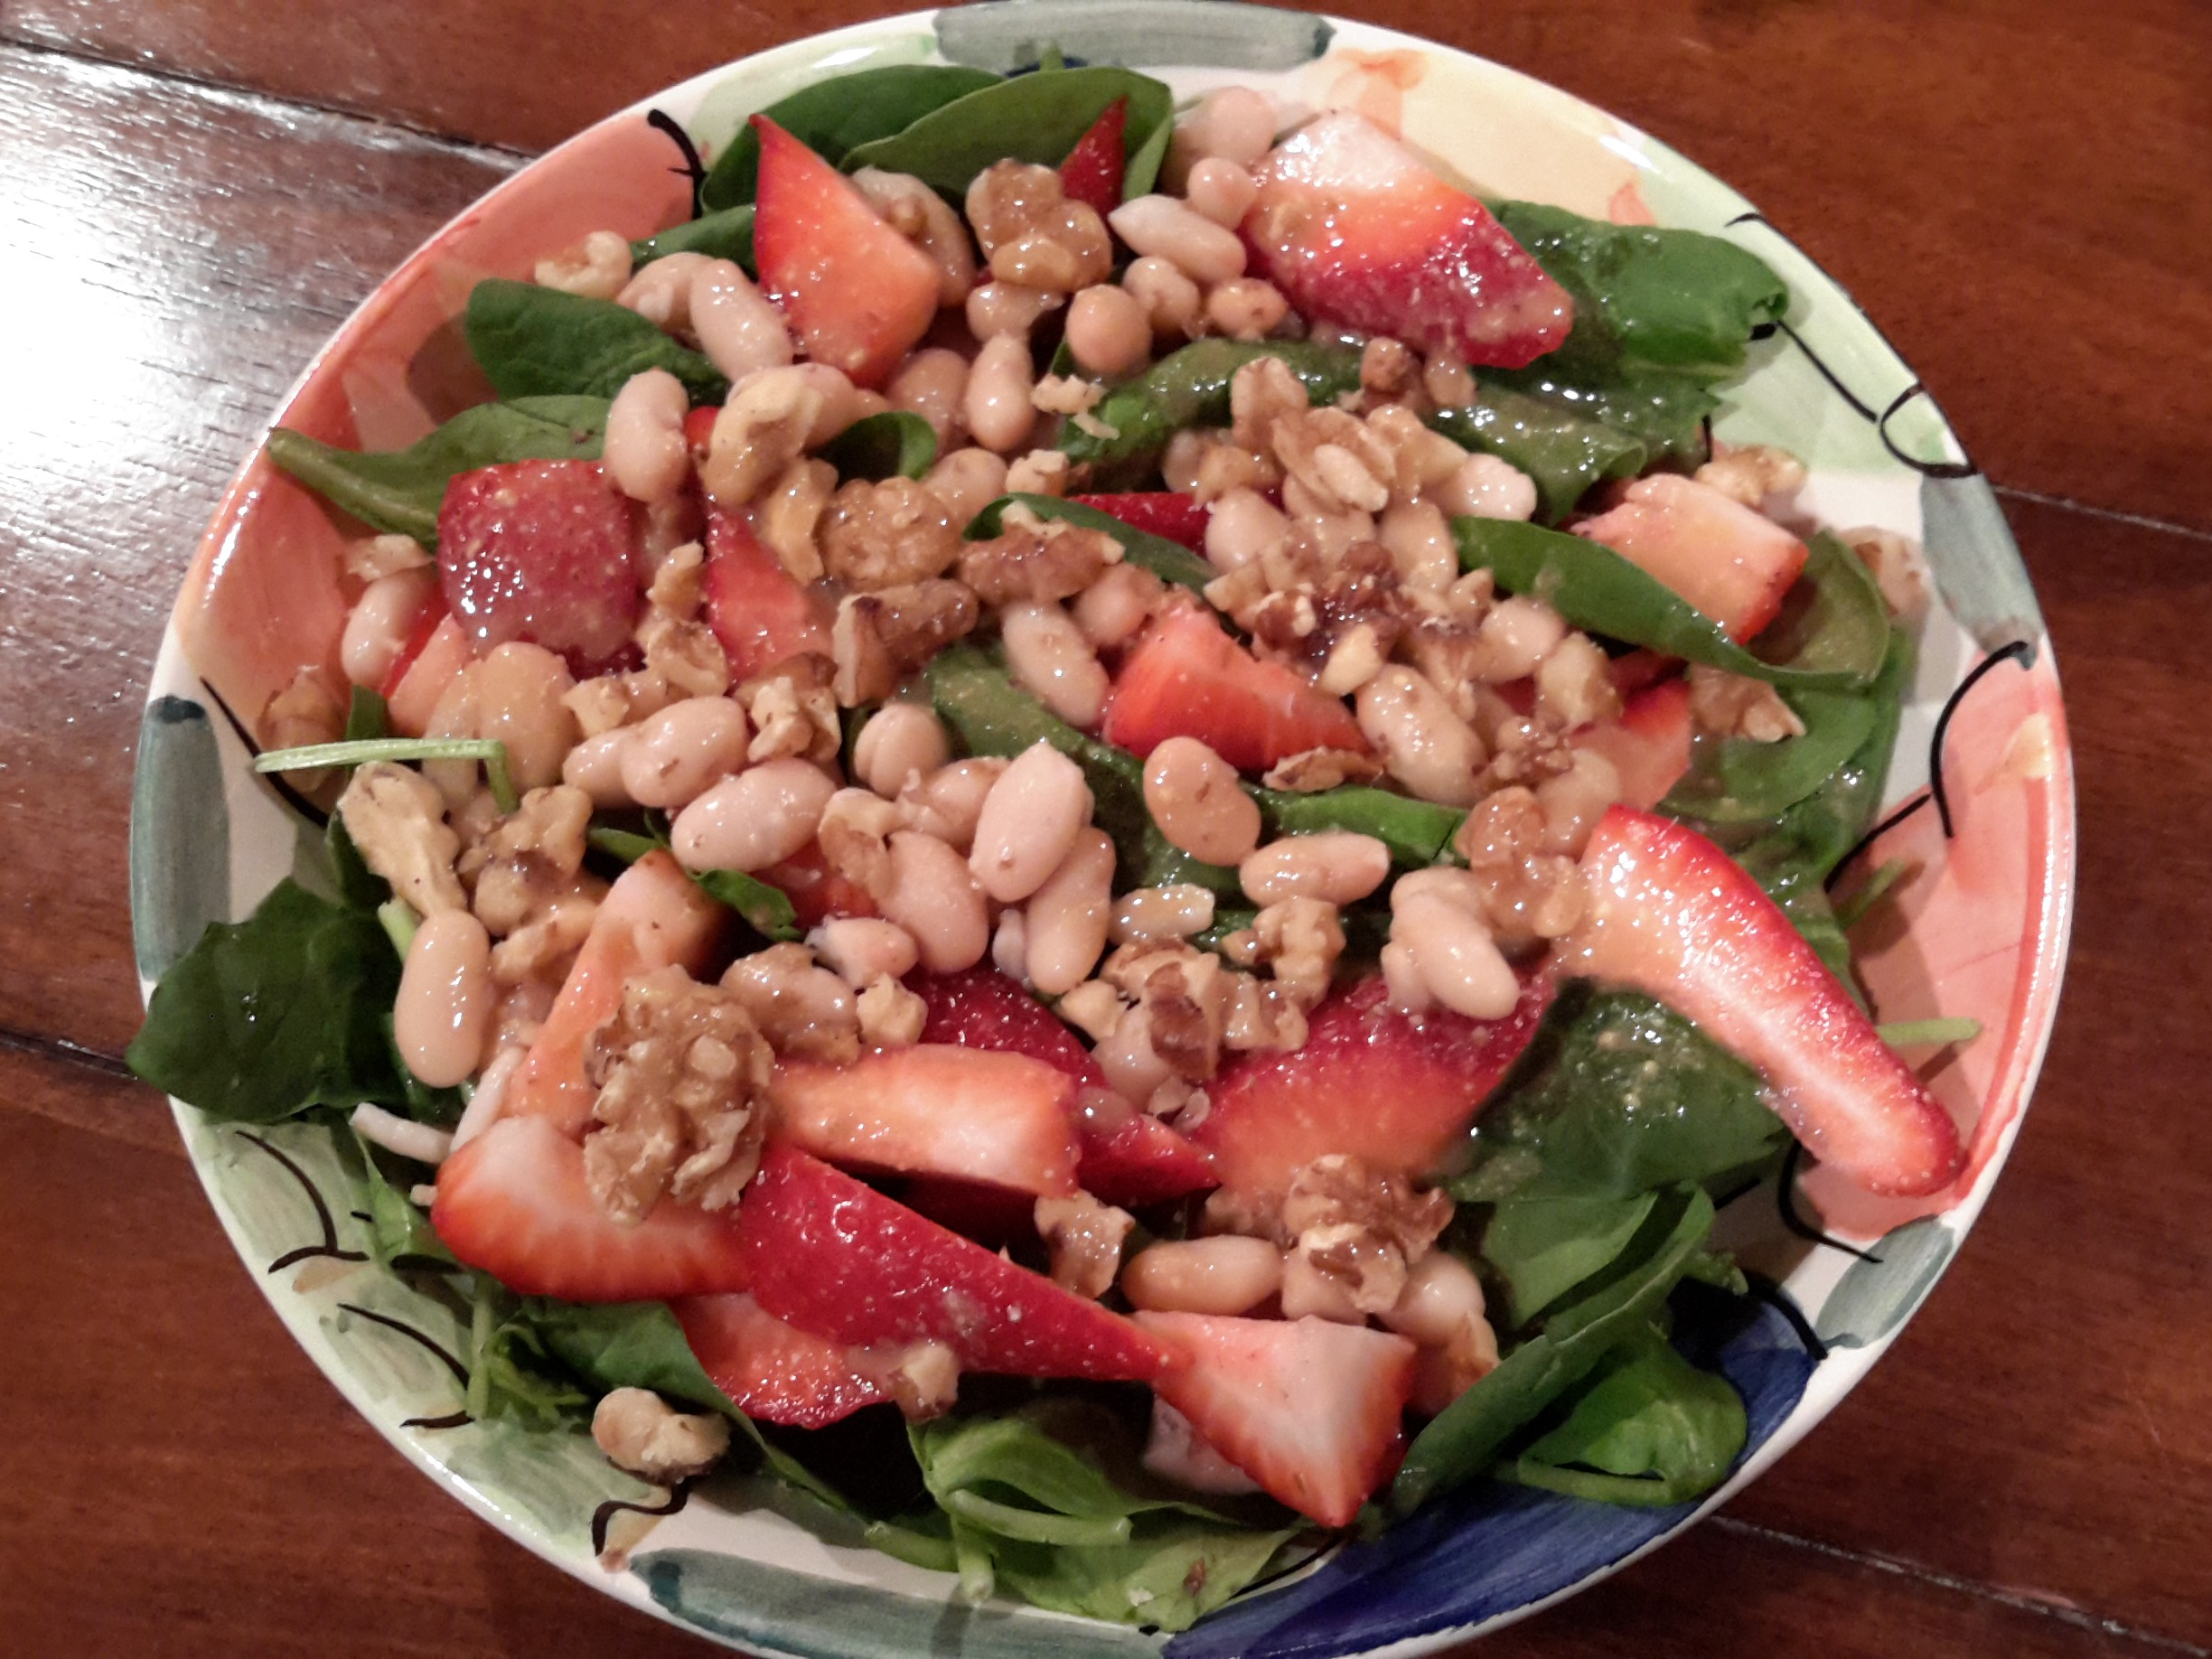 Whole Foods Strawberry Spinach Salad